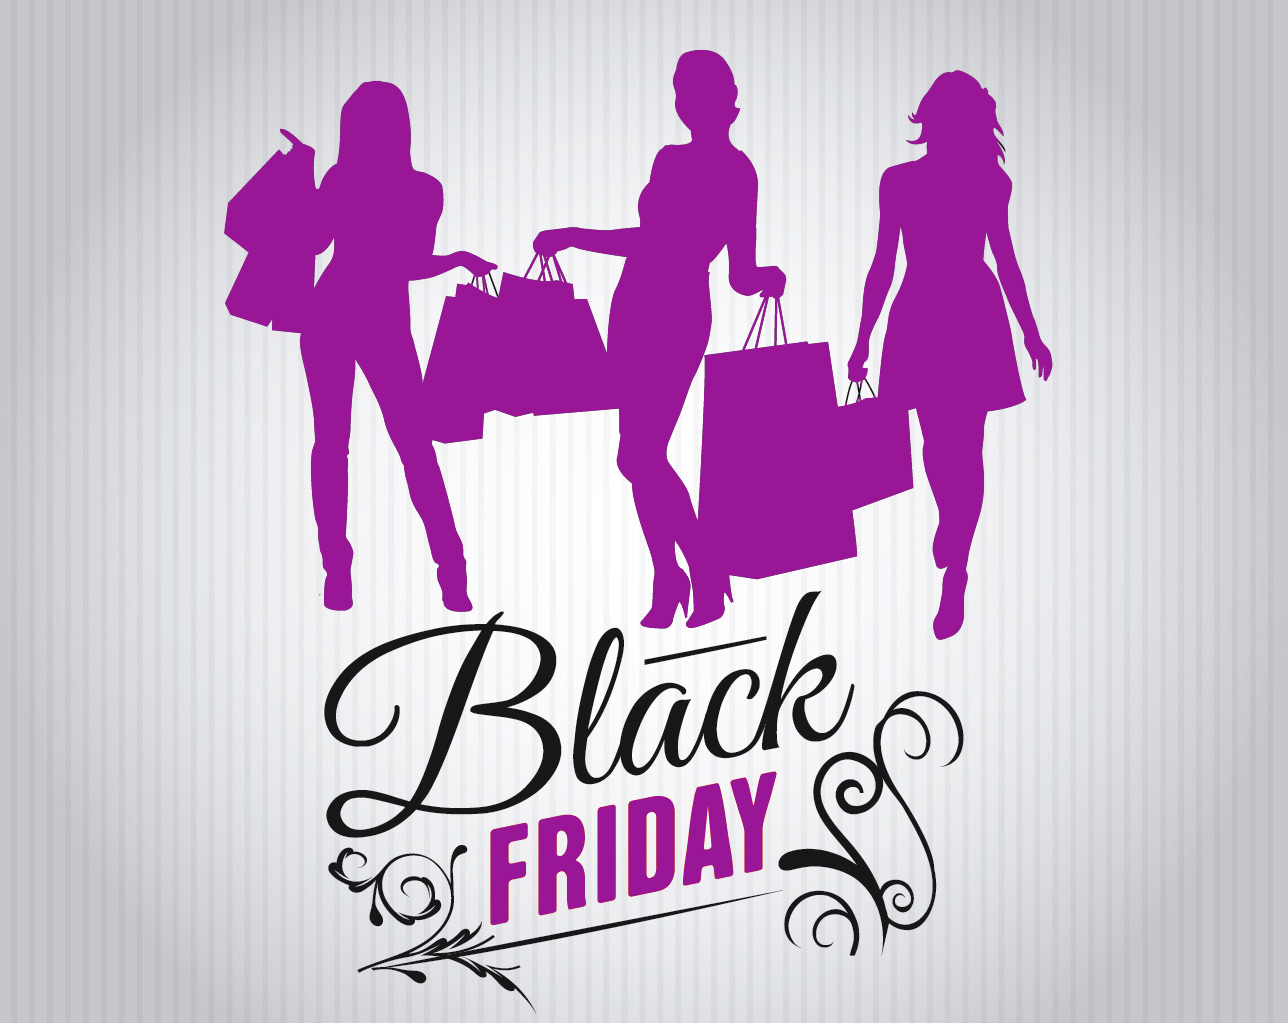 Black Friday 2015 - Img by www.vectoropenstock.com (article page for credits)